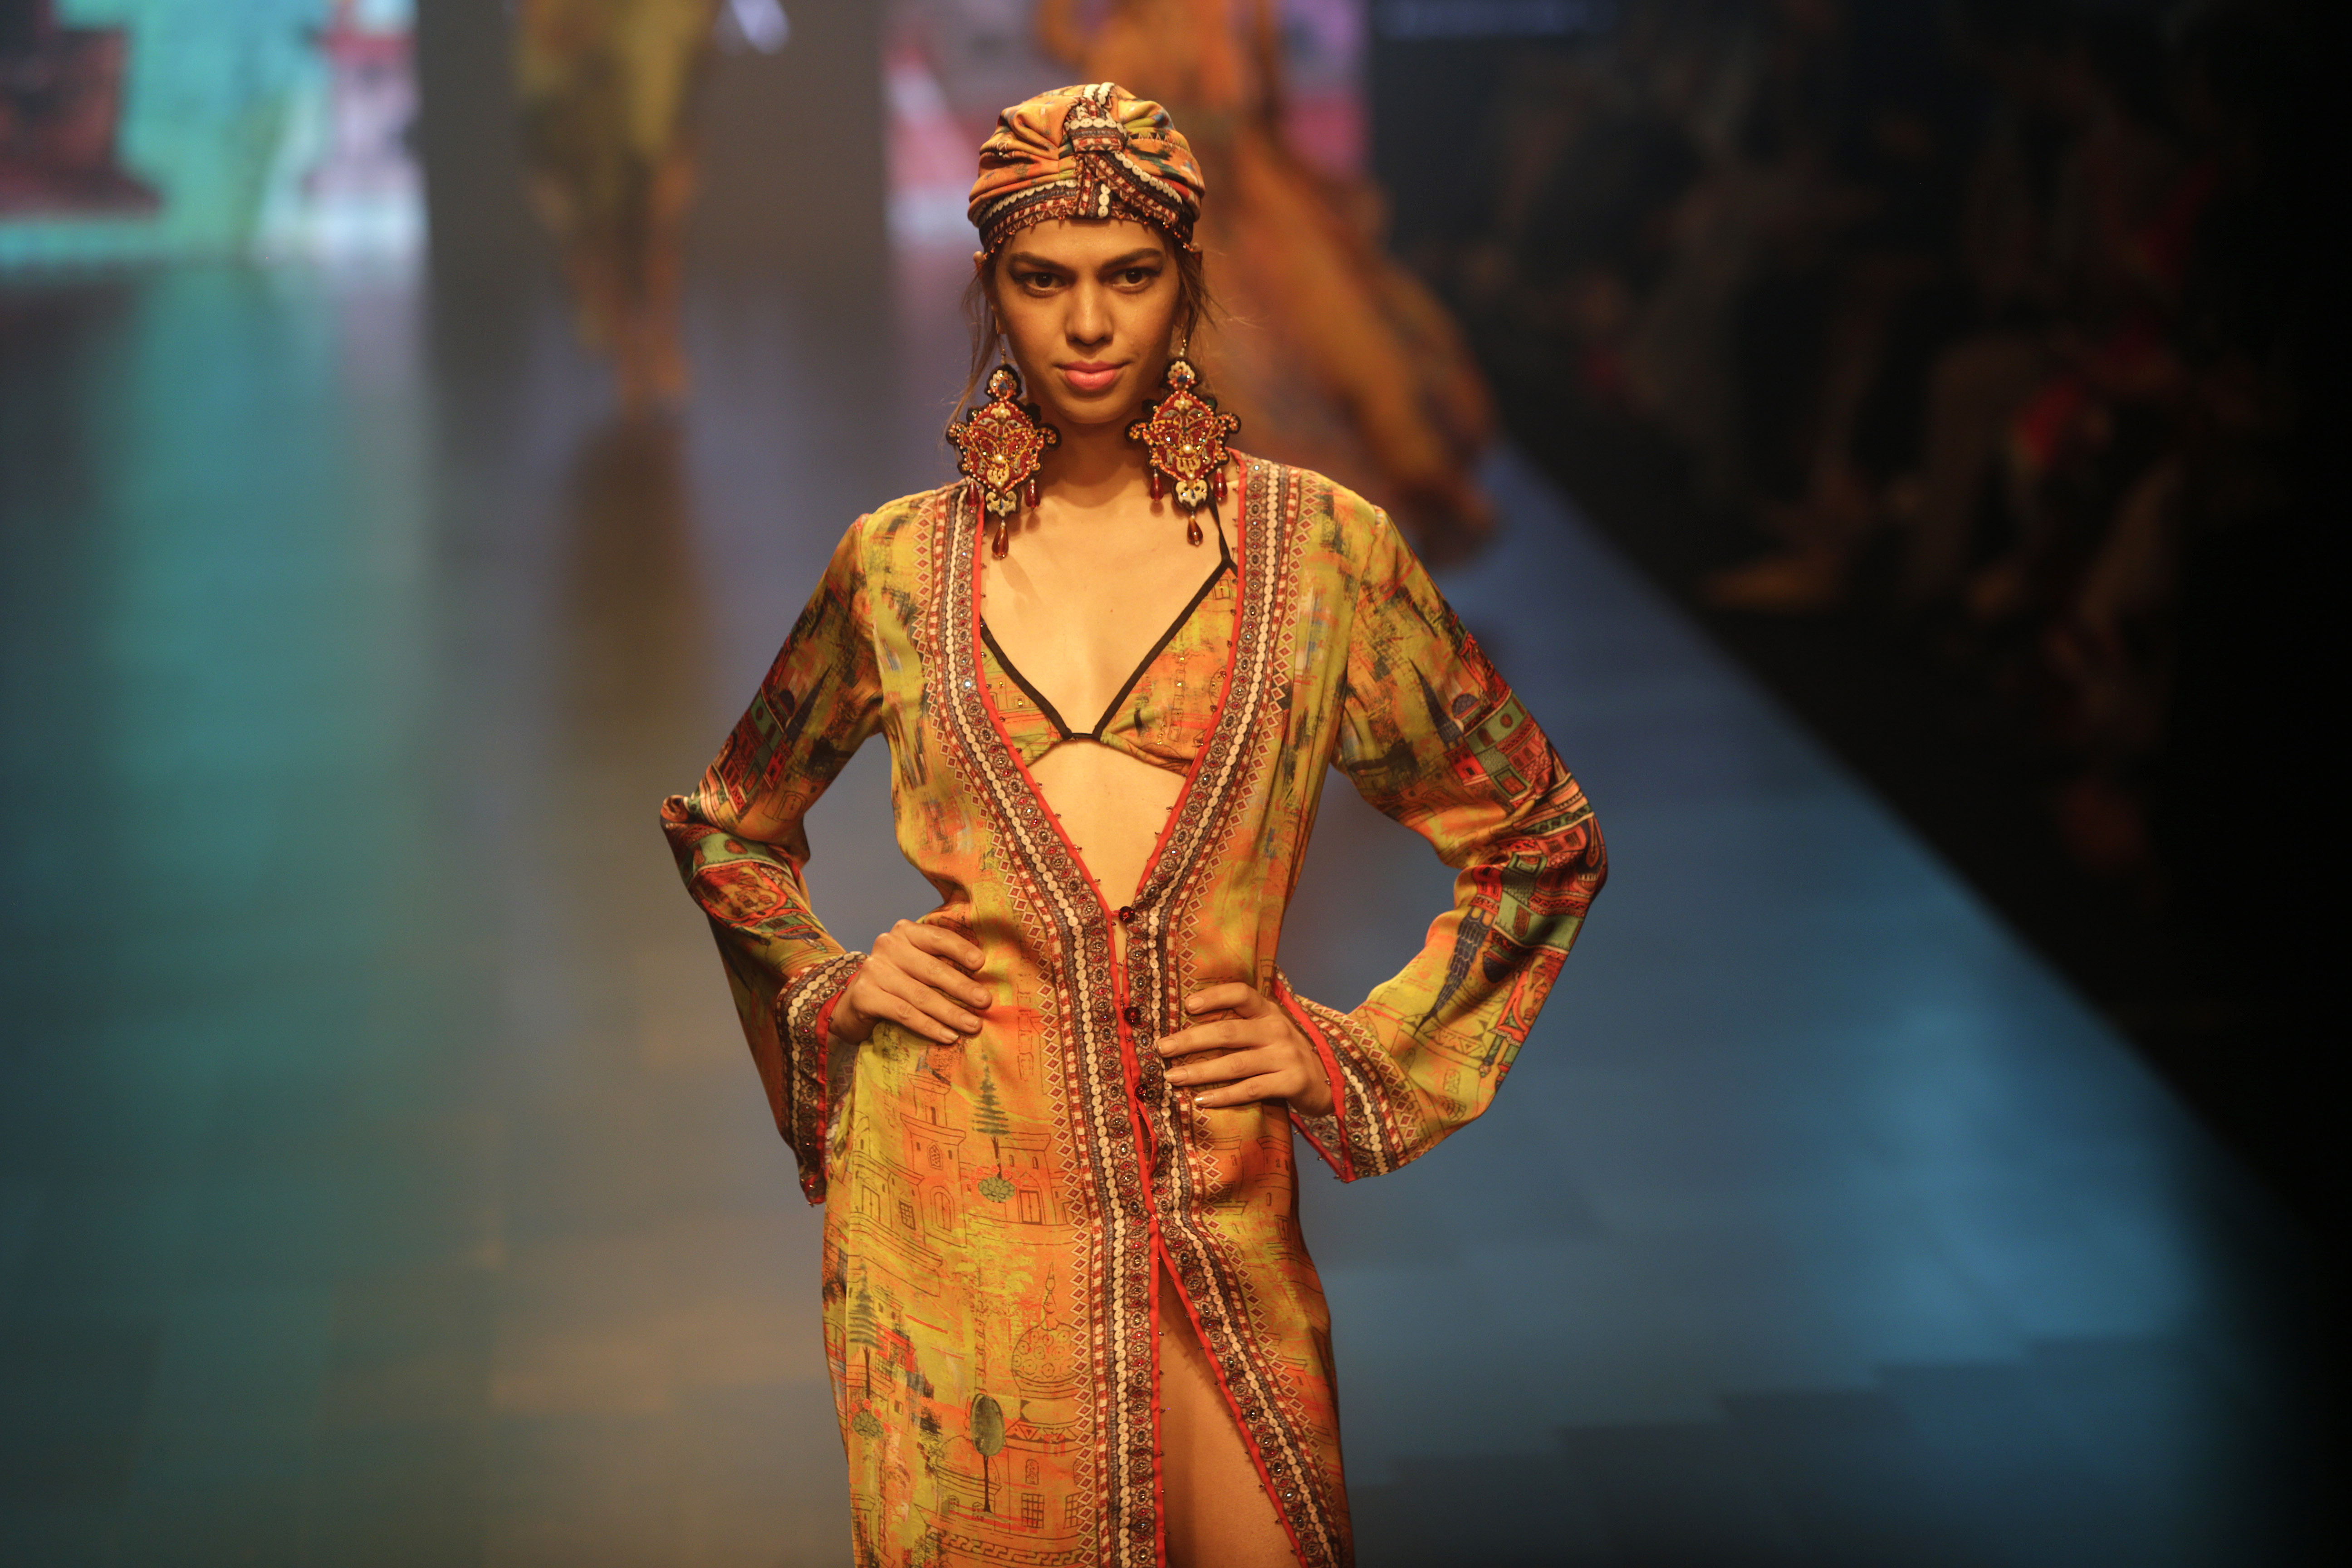 A model displays a creation by Rajdeep Ranawat during the Lakme Fashion Week in Mumbai - AP